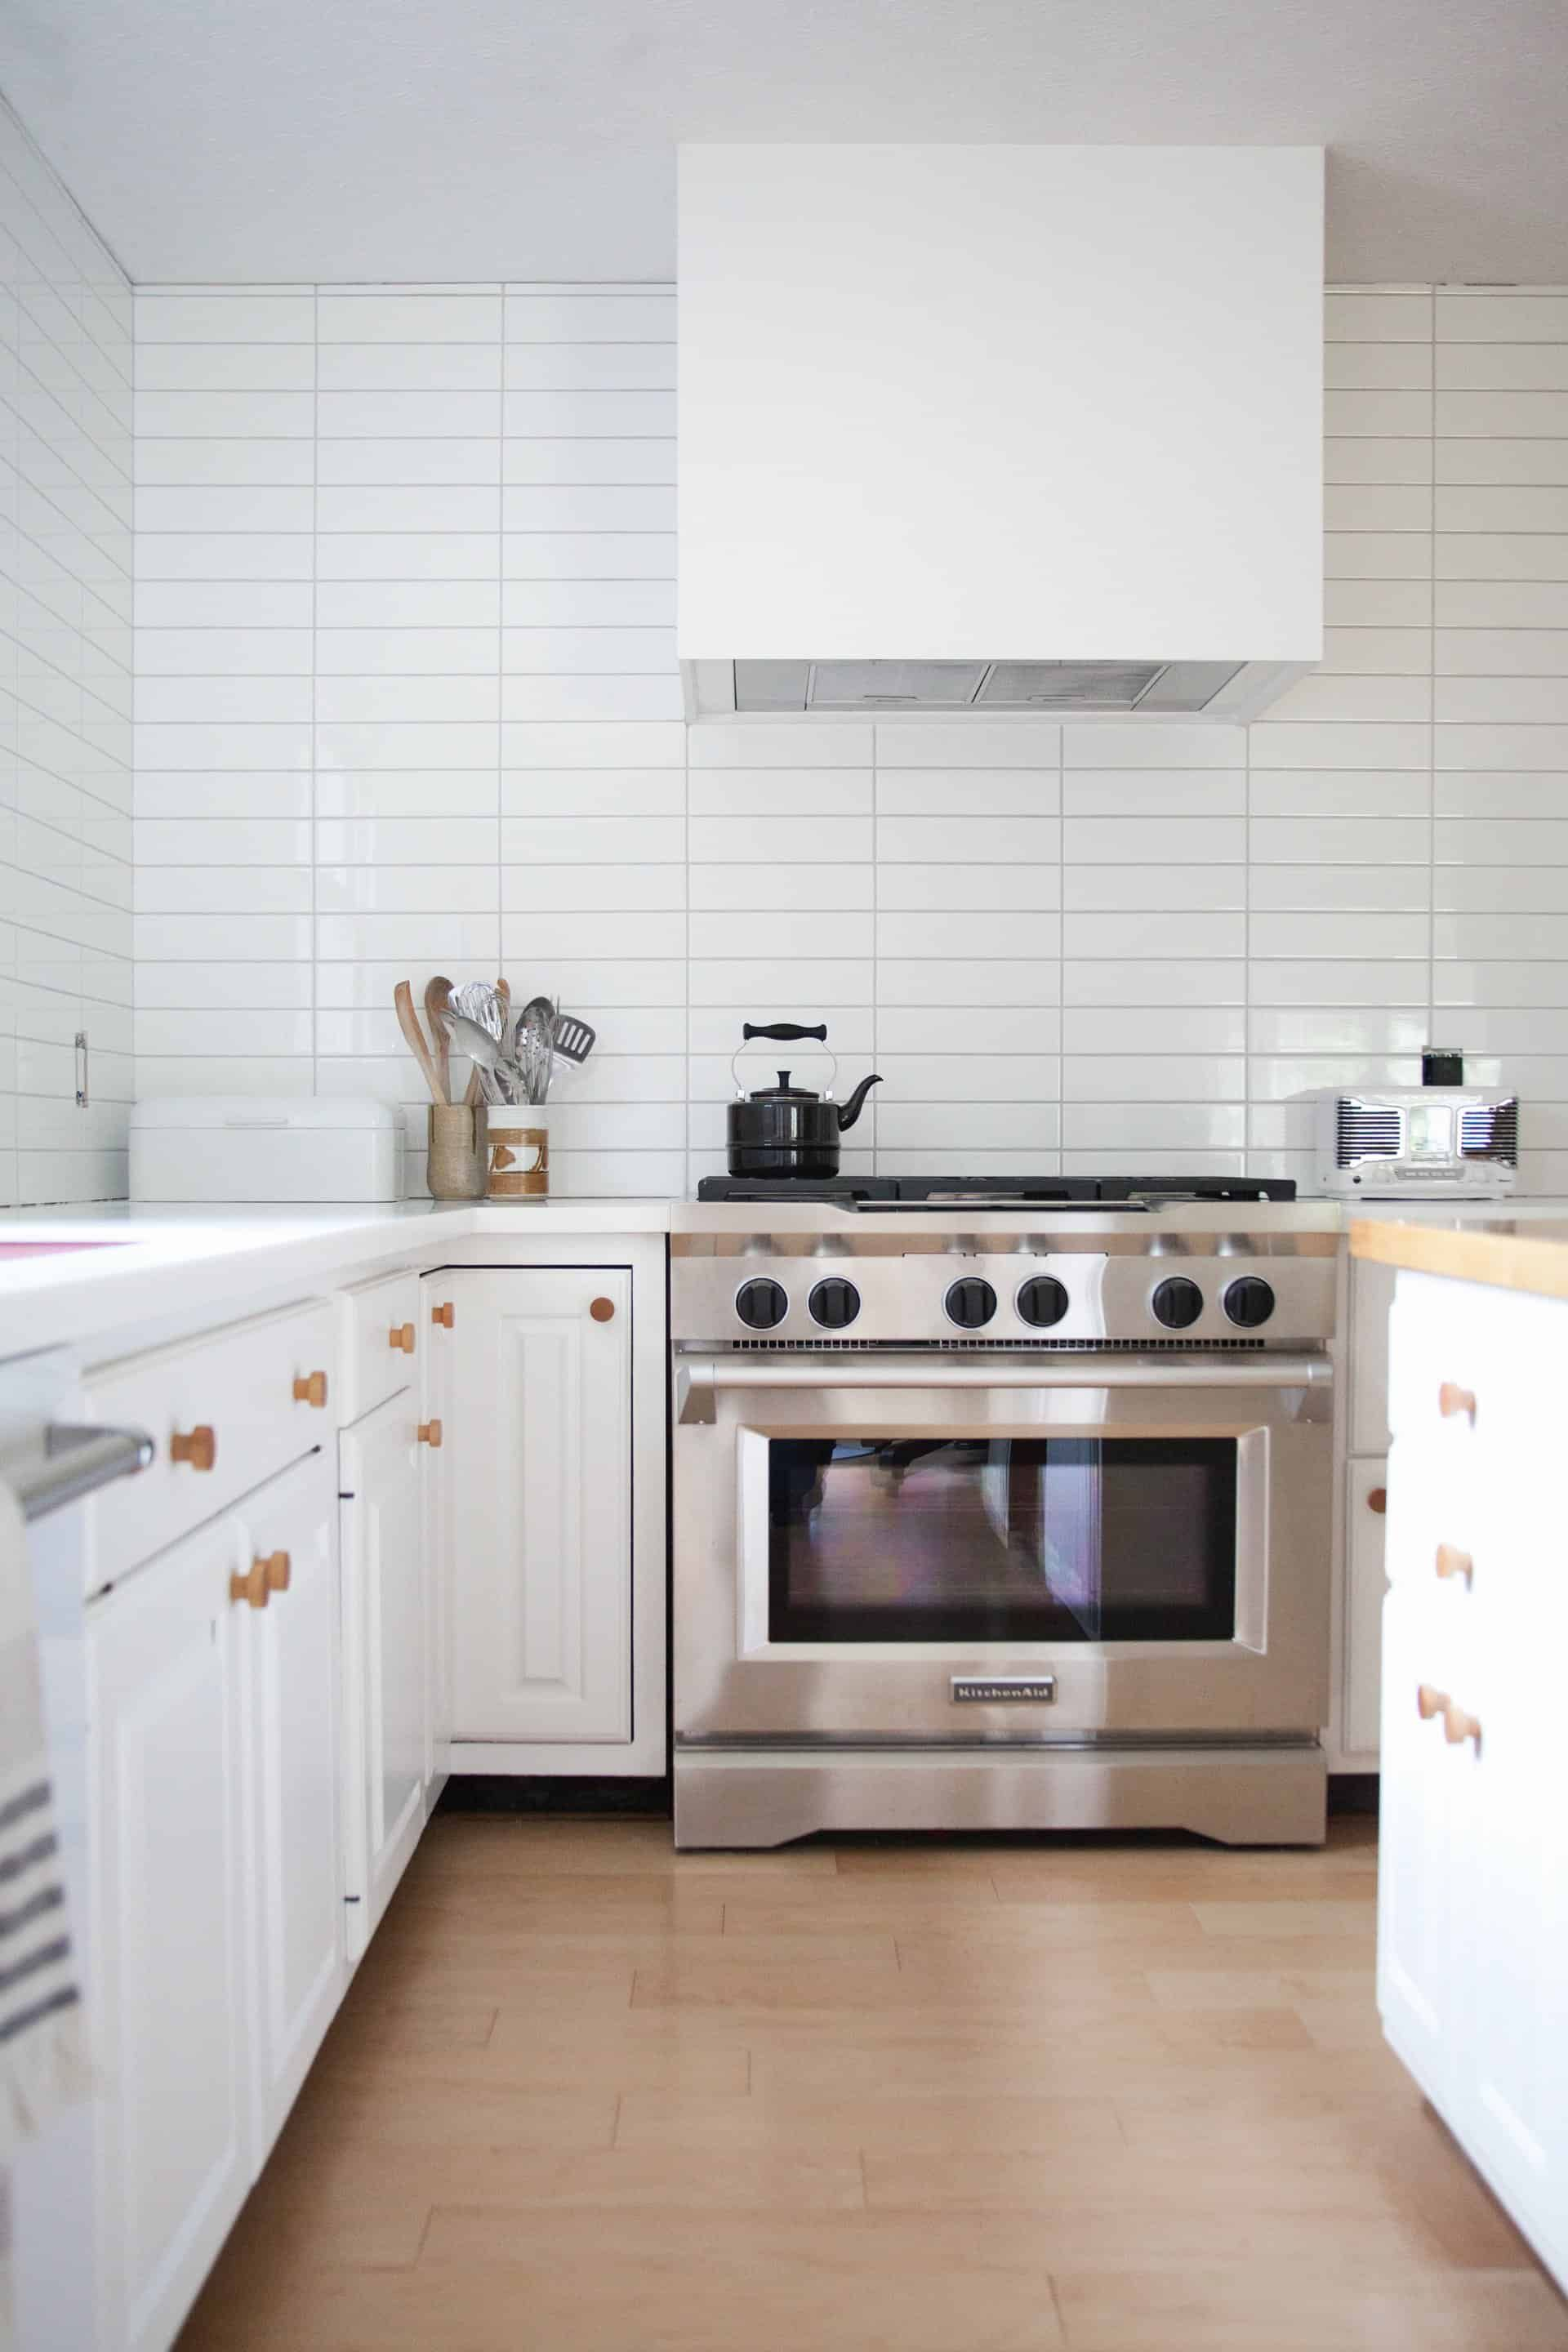 Painting Cabinets With Chalk Paint Pros Cons With Images Chalk Paint Kitchen Cabinets Painting Kitchen Cabinets Kitchen Cabinets